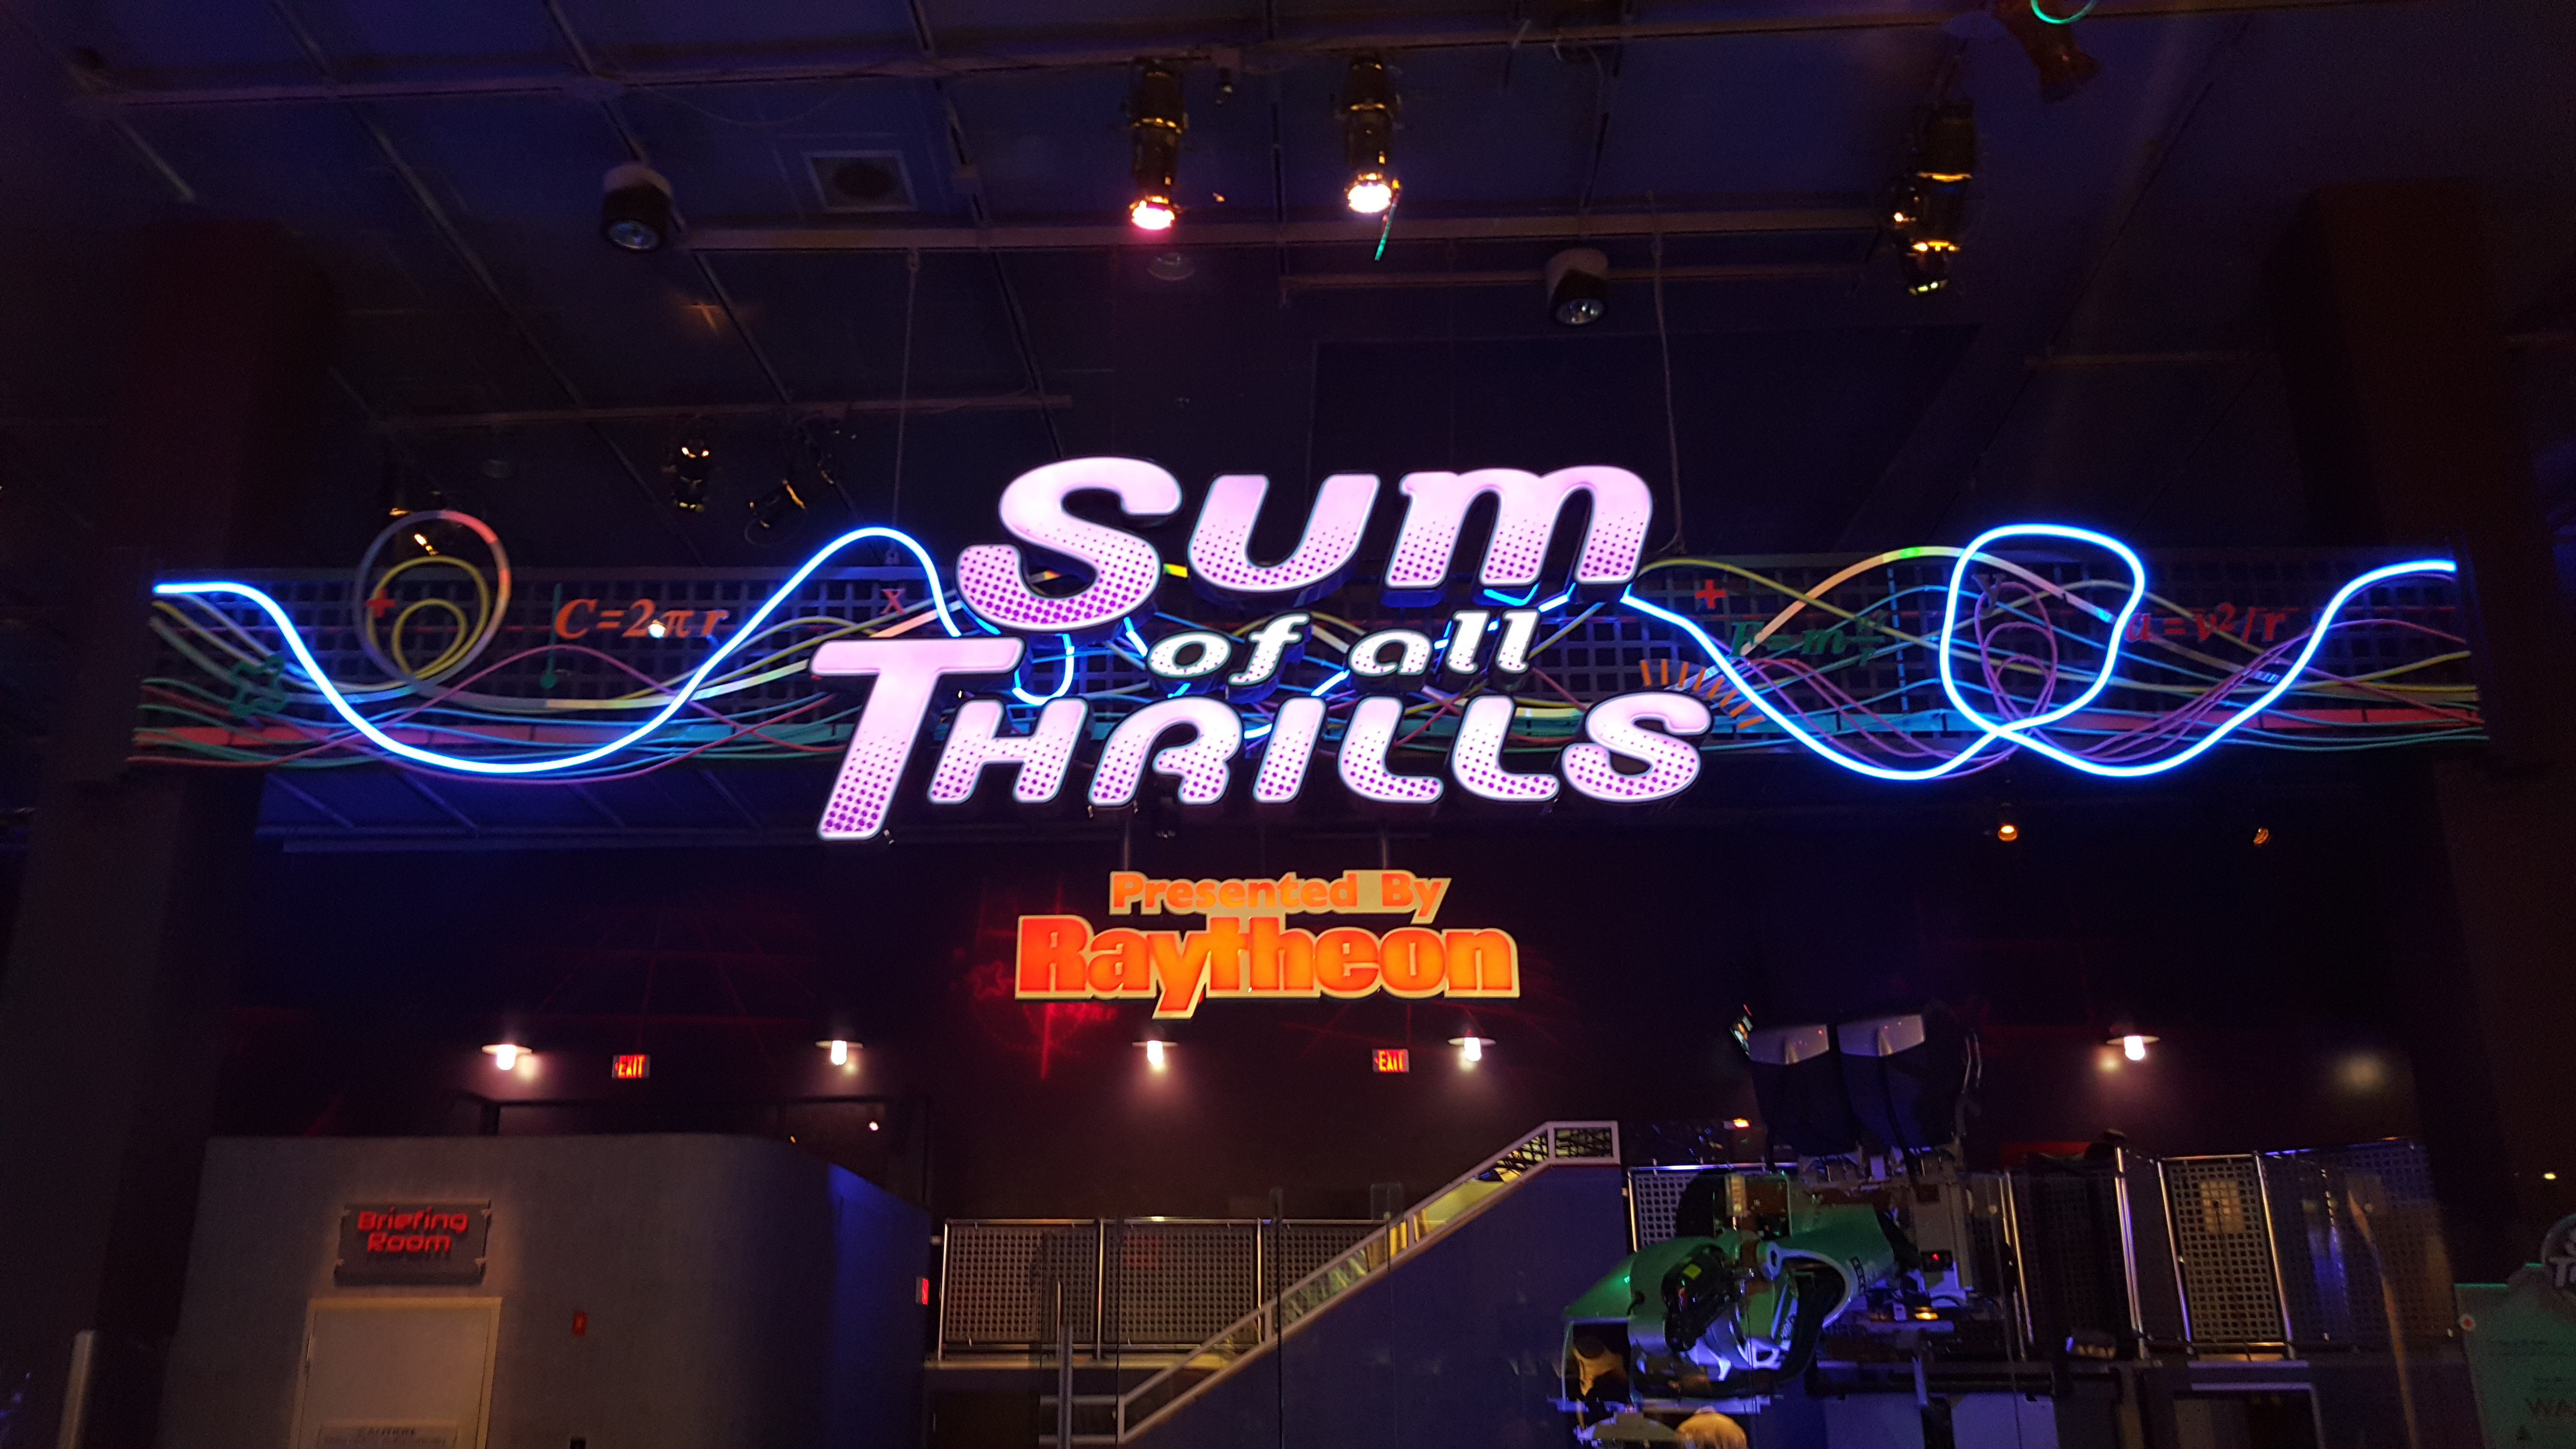 What is Innoventions at Epcot?